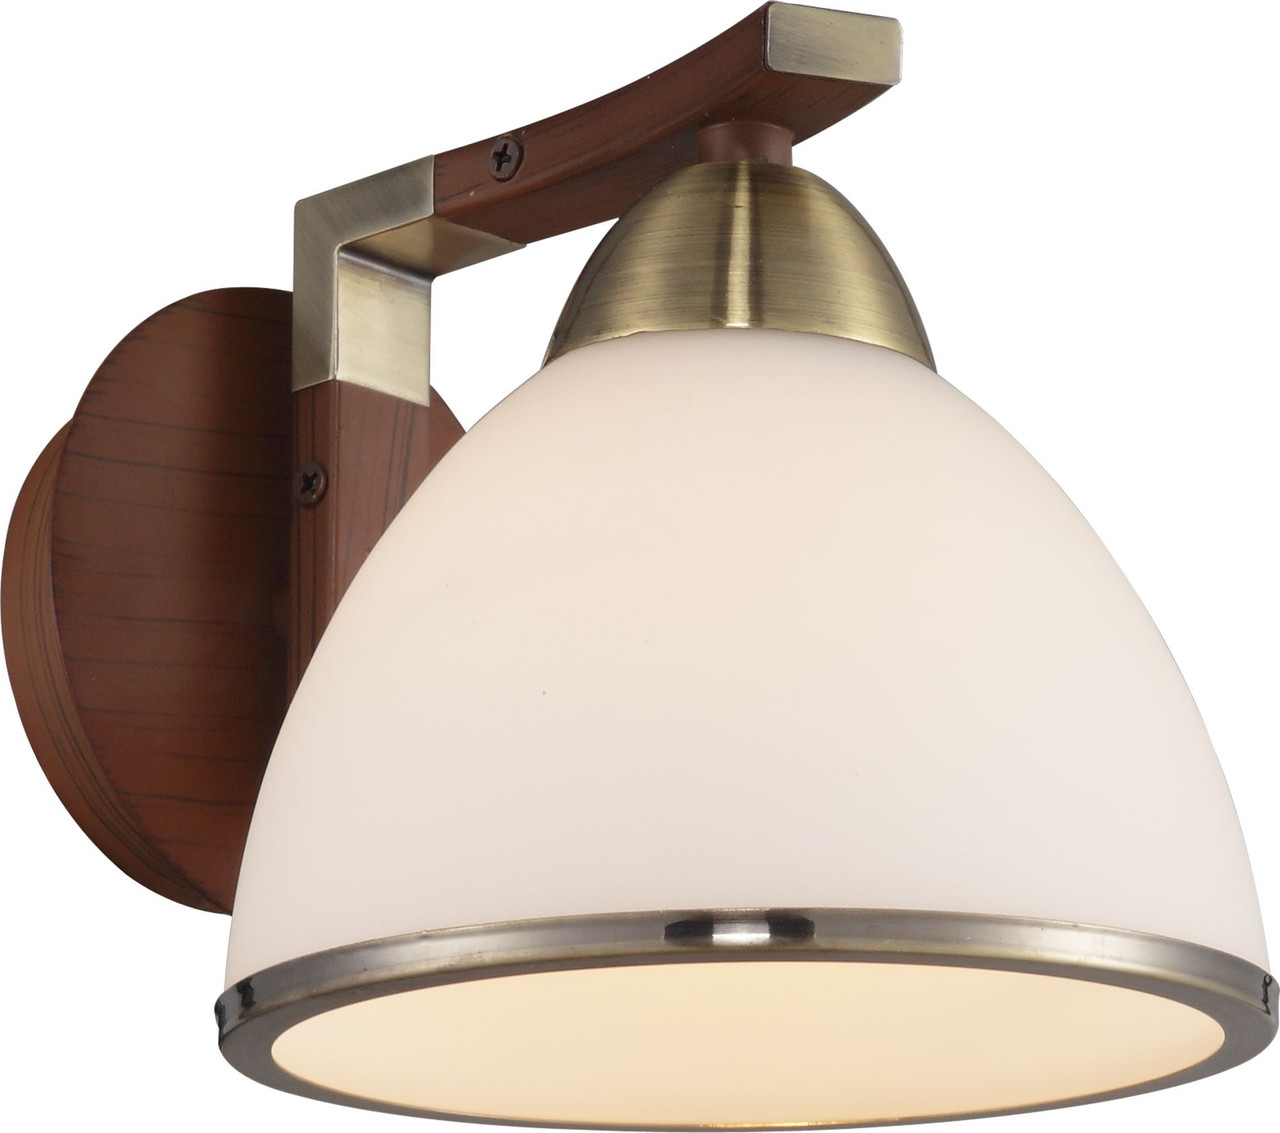 Бра Altalusse INL-9287W-01 Antique brass & Walnut